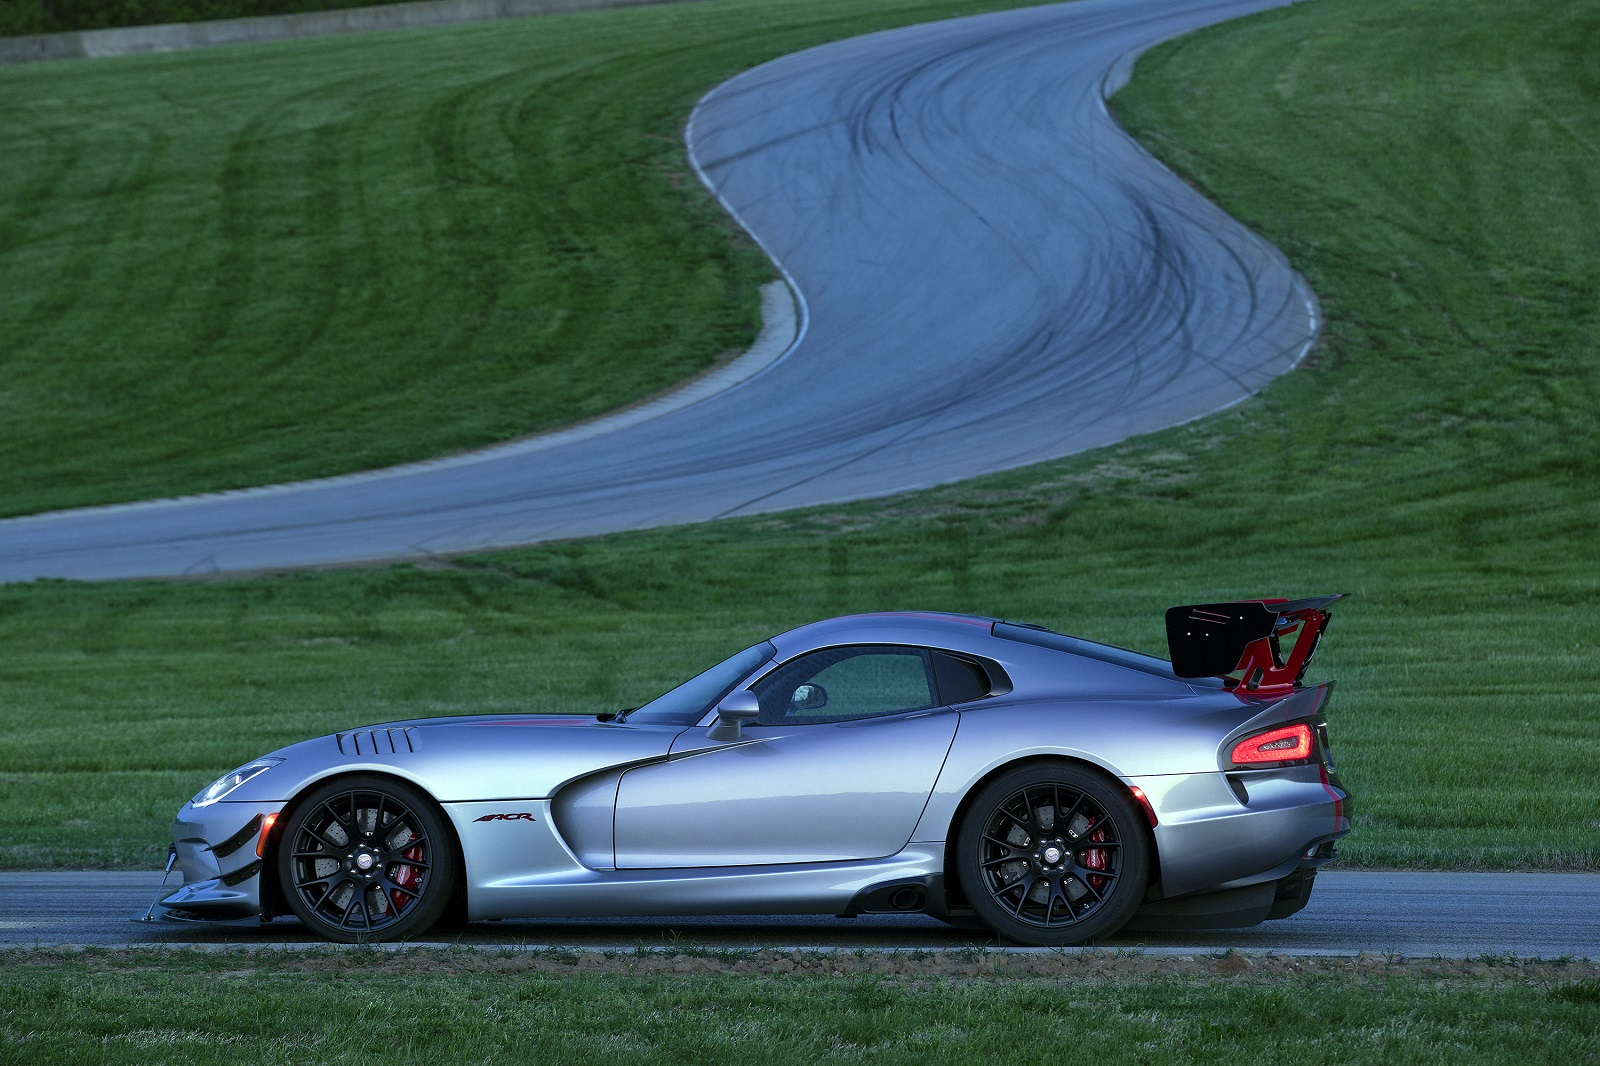 2016 Dodge Viper ACR is Ready to Strike - 6SpeedOnline